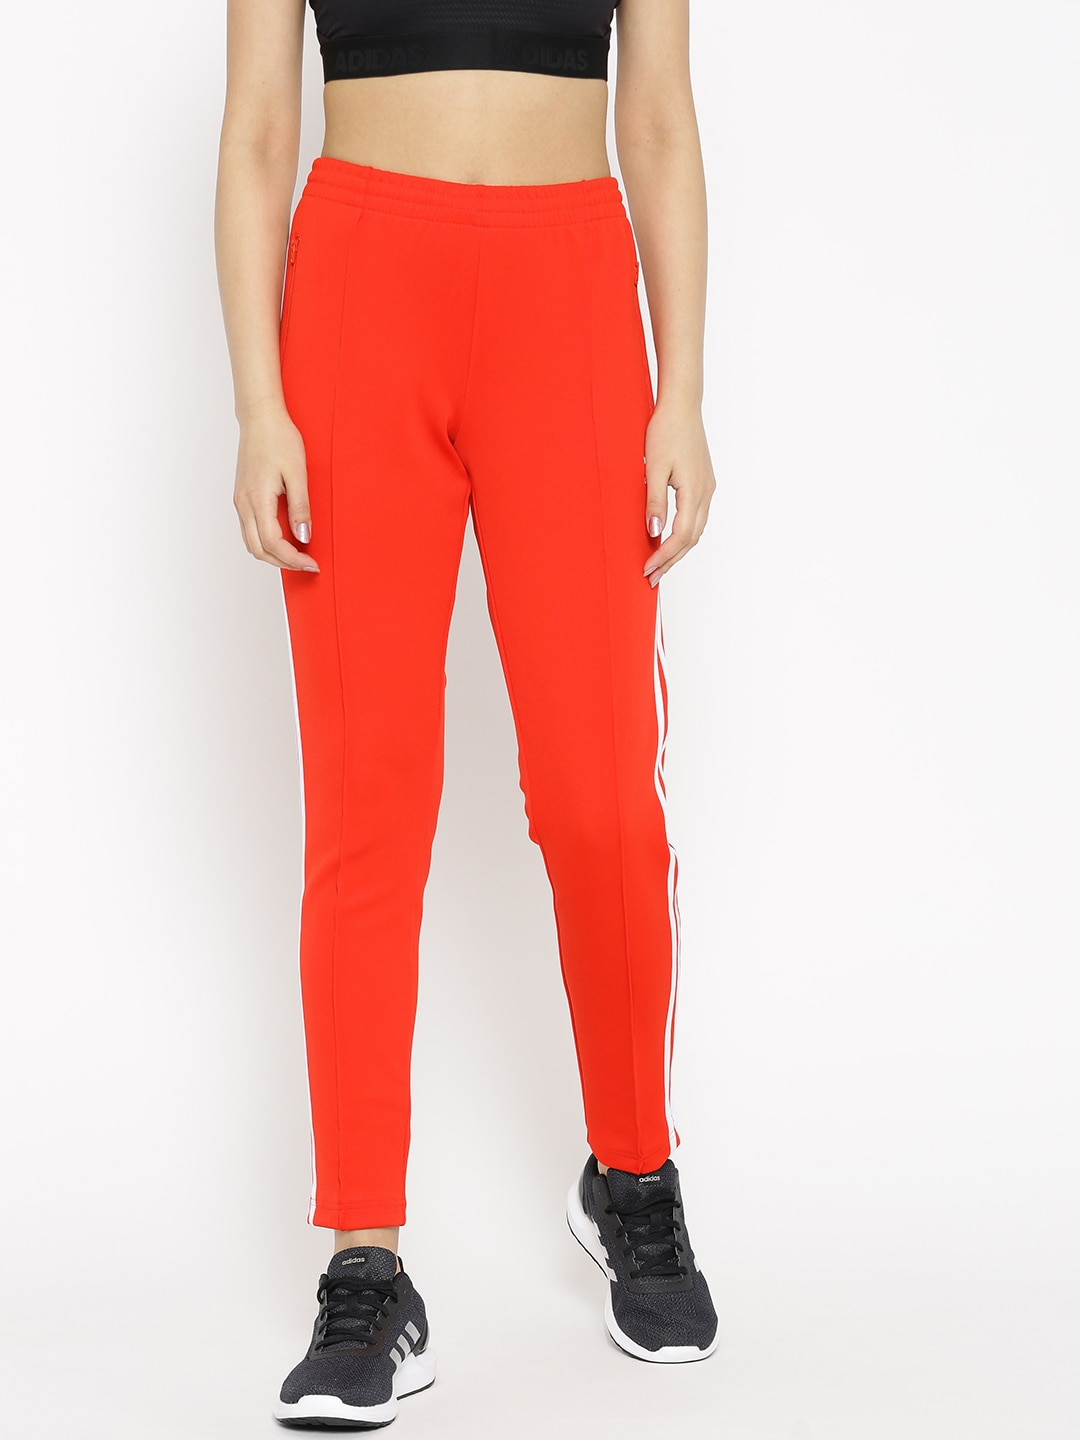 c63ec4329 Buy ADIDAS ORIGINALS Women Red & White Striped Cropped Joggers ...